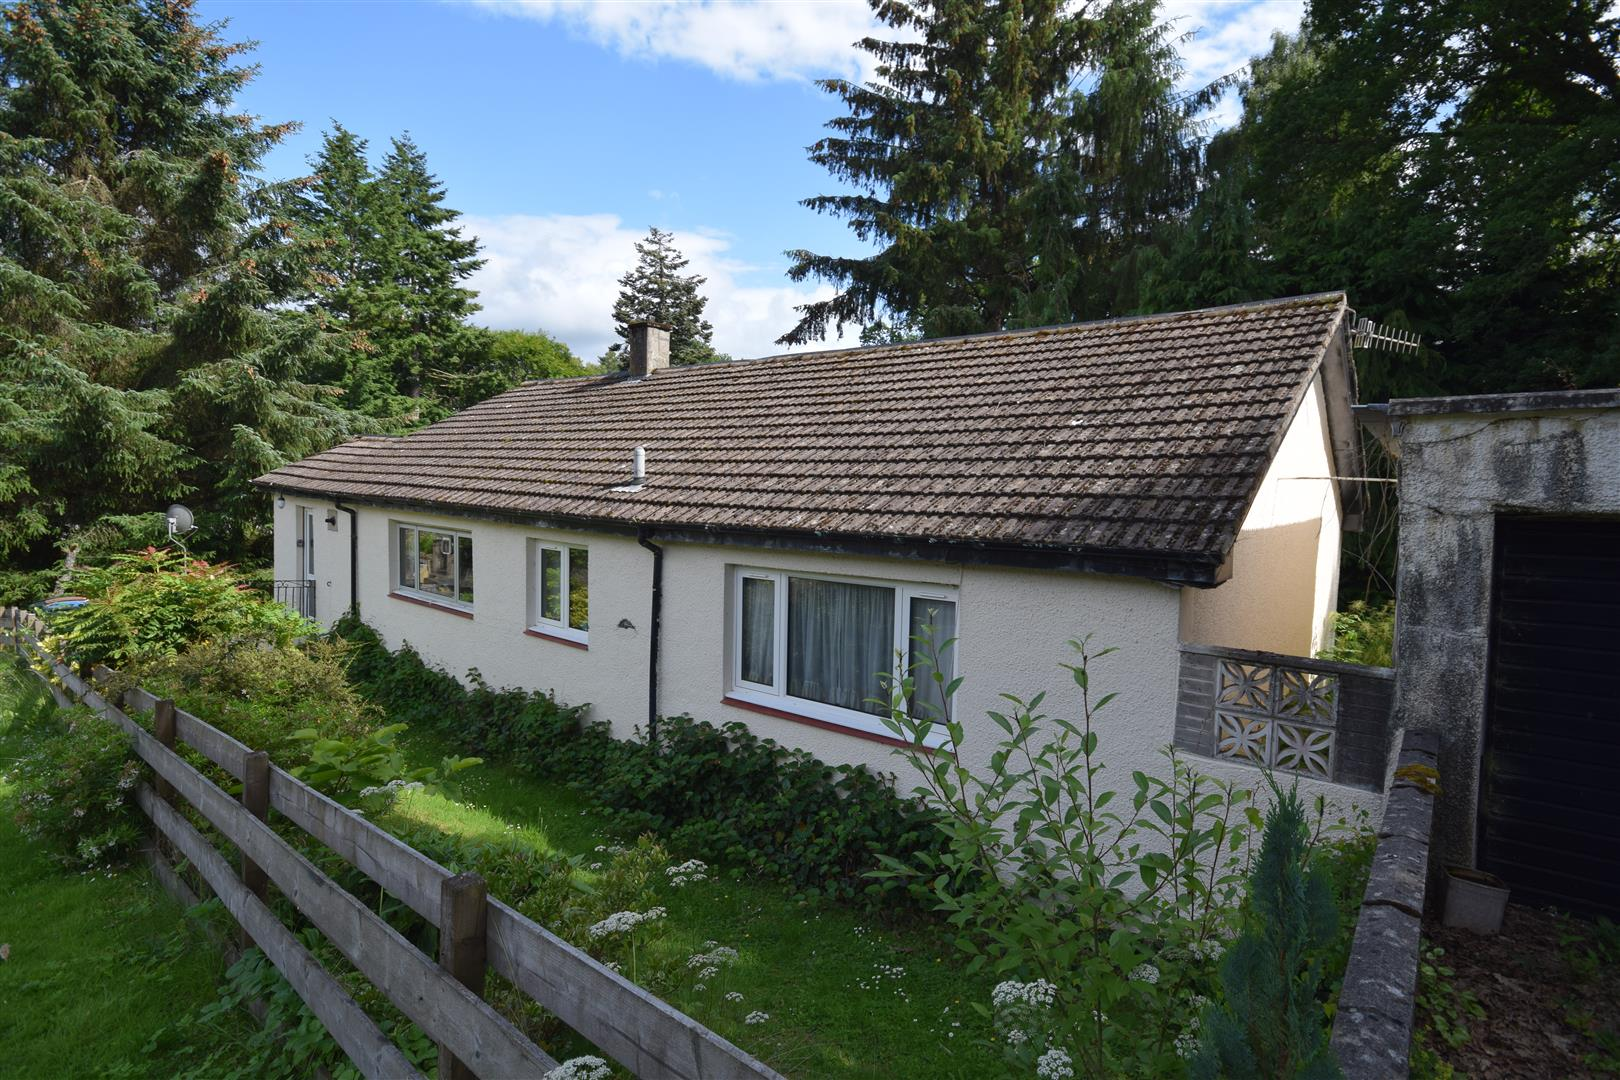 1, Dixon Terrace, Pitlochry, Perthshire, PH16 5QX, UK